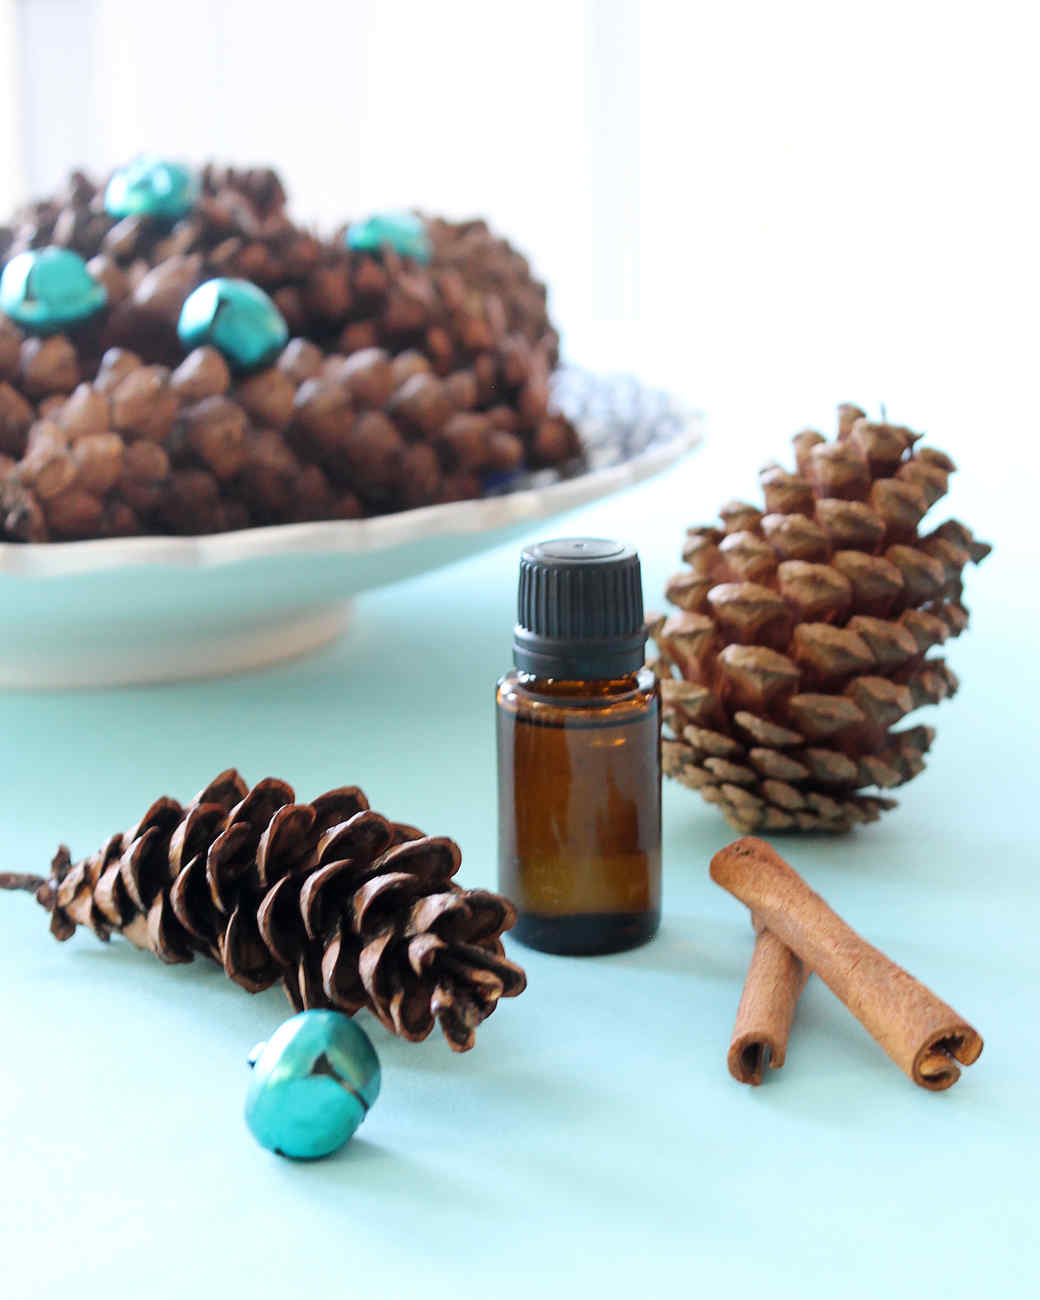 scented pinecones with essential oils